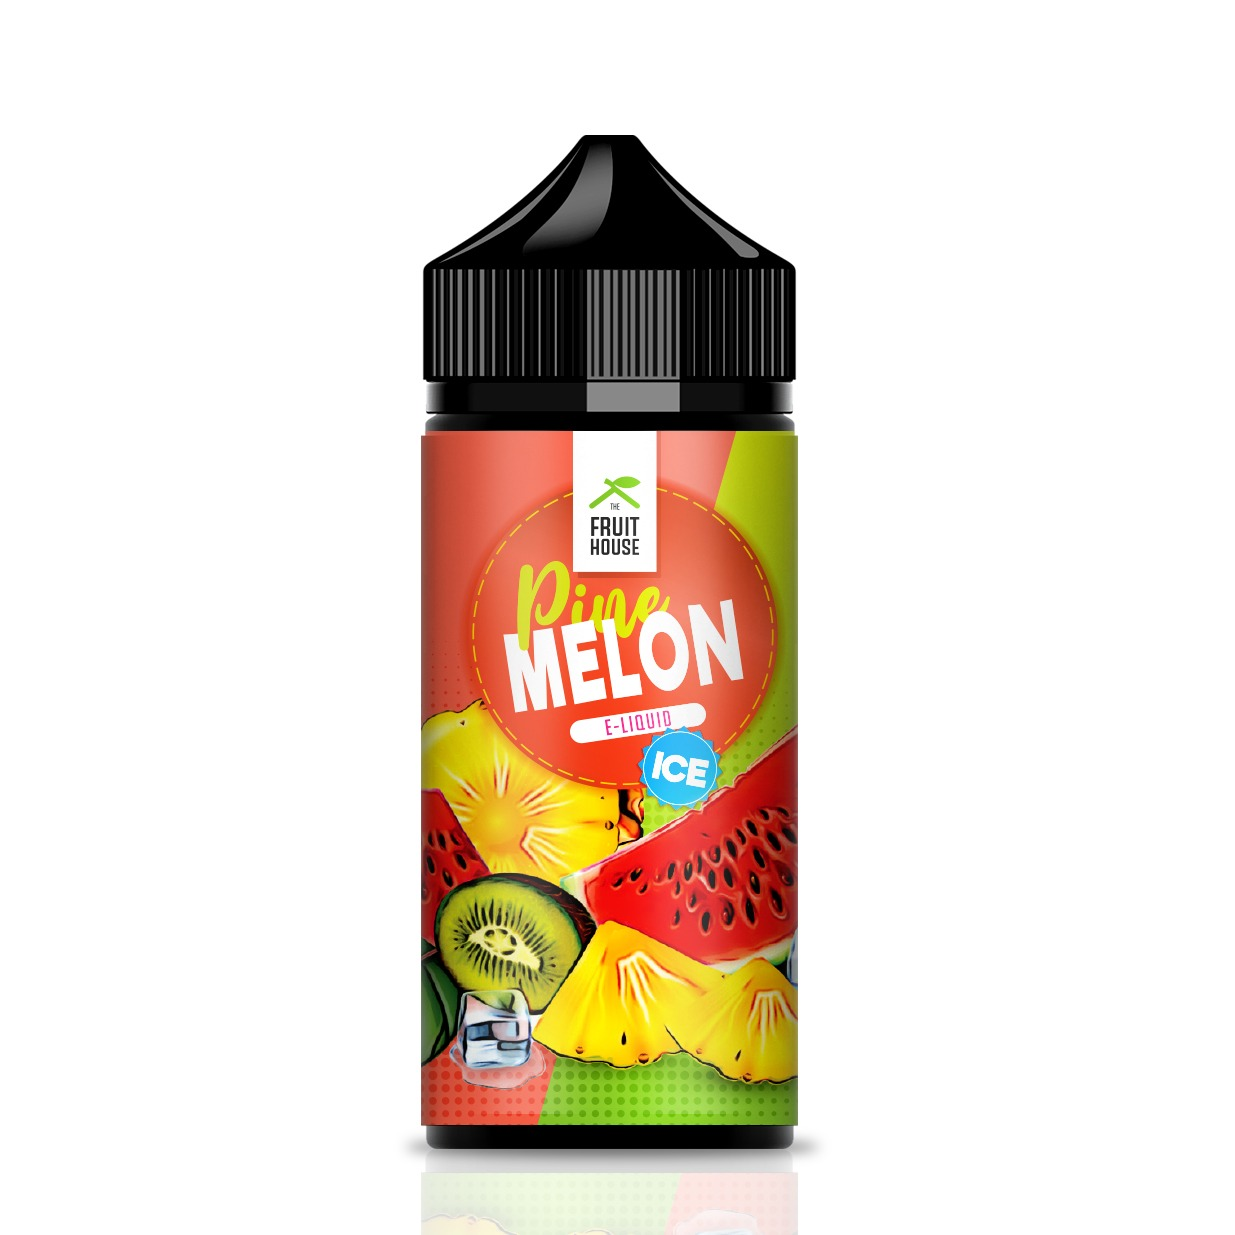 The Fruit House Pine Melon